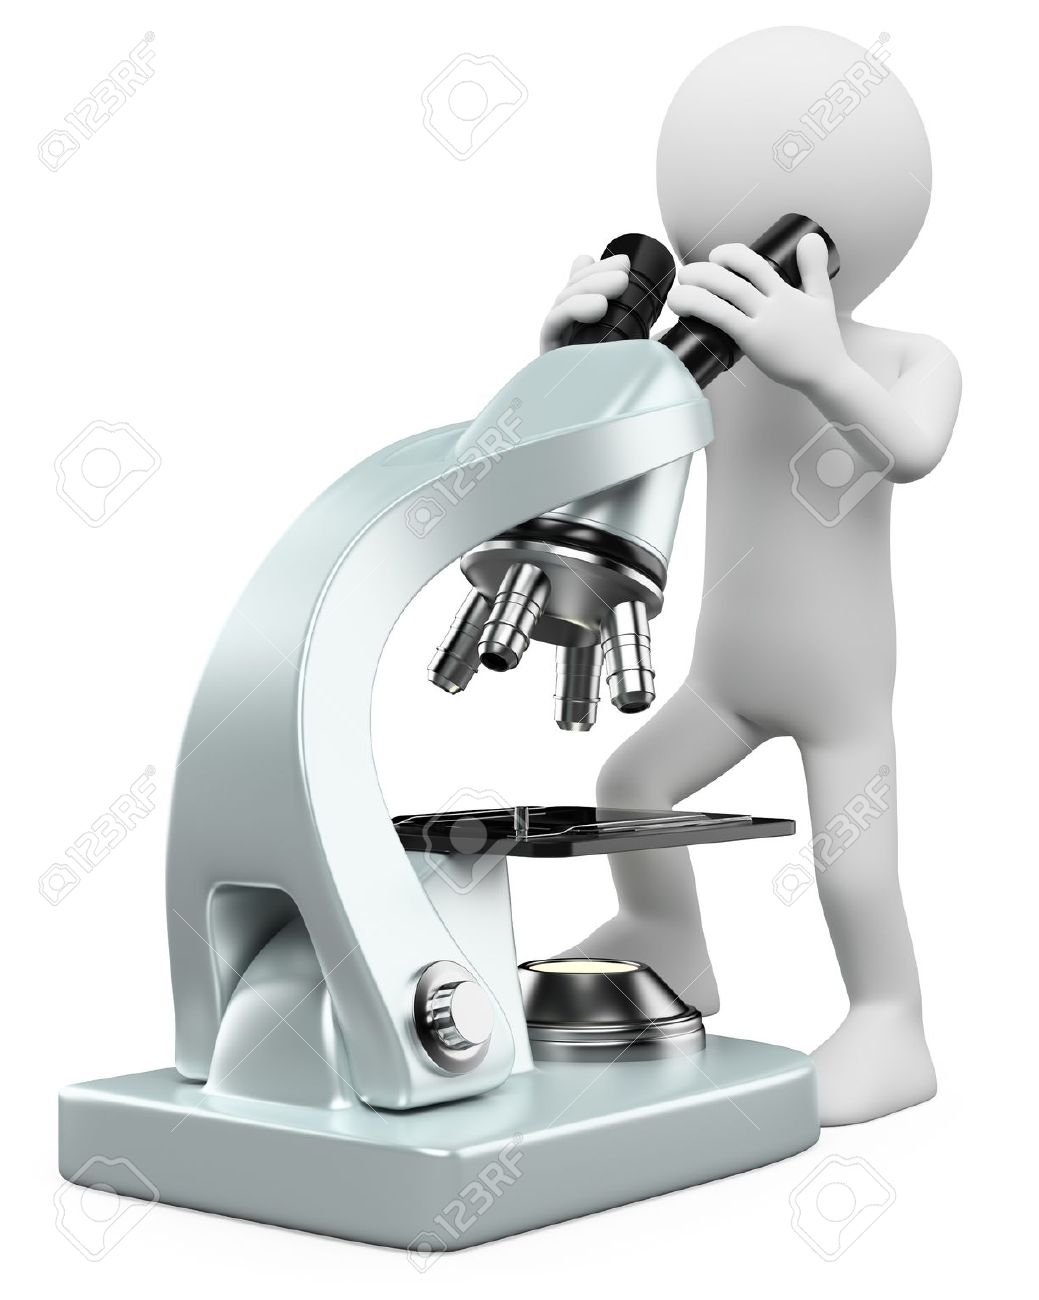 3d white person looking through a microscope. 3d image. Isolated white background. Stock Photo - 13933315